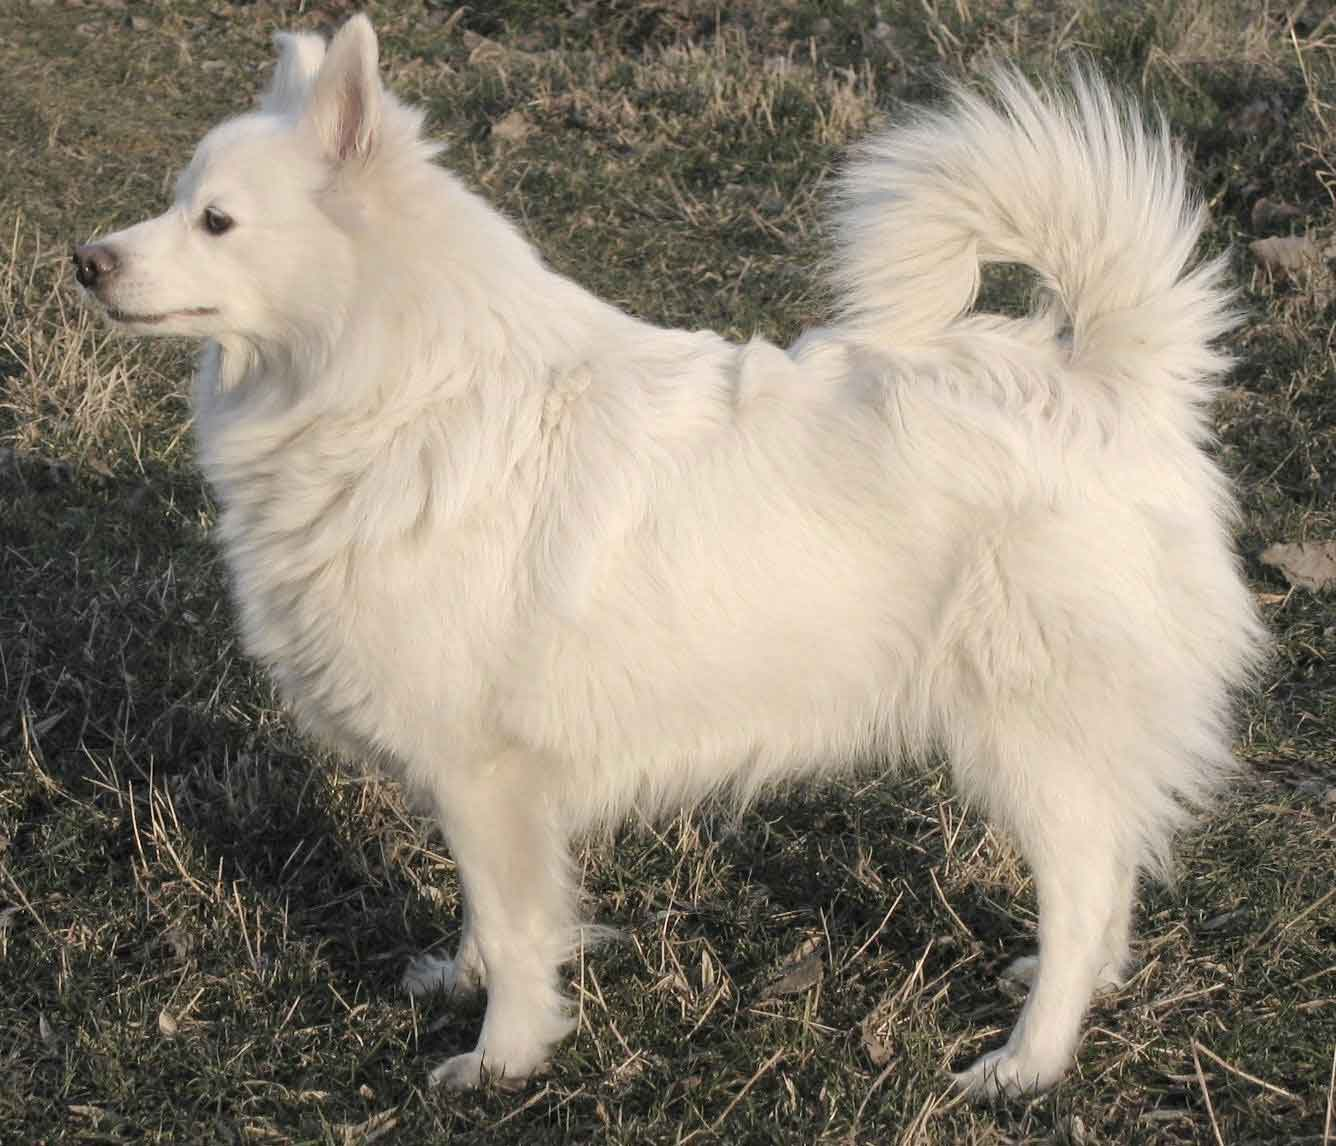 Grossespitz (Giant or Large Spitz)